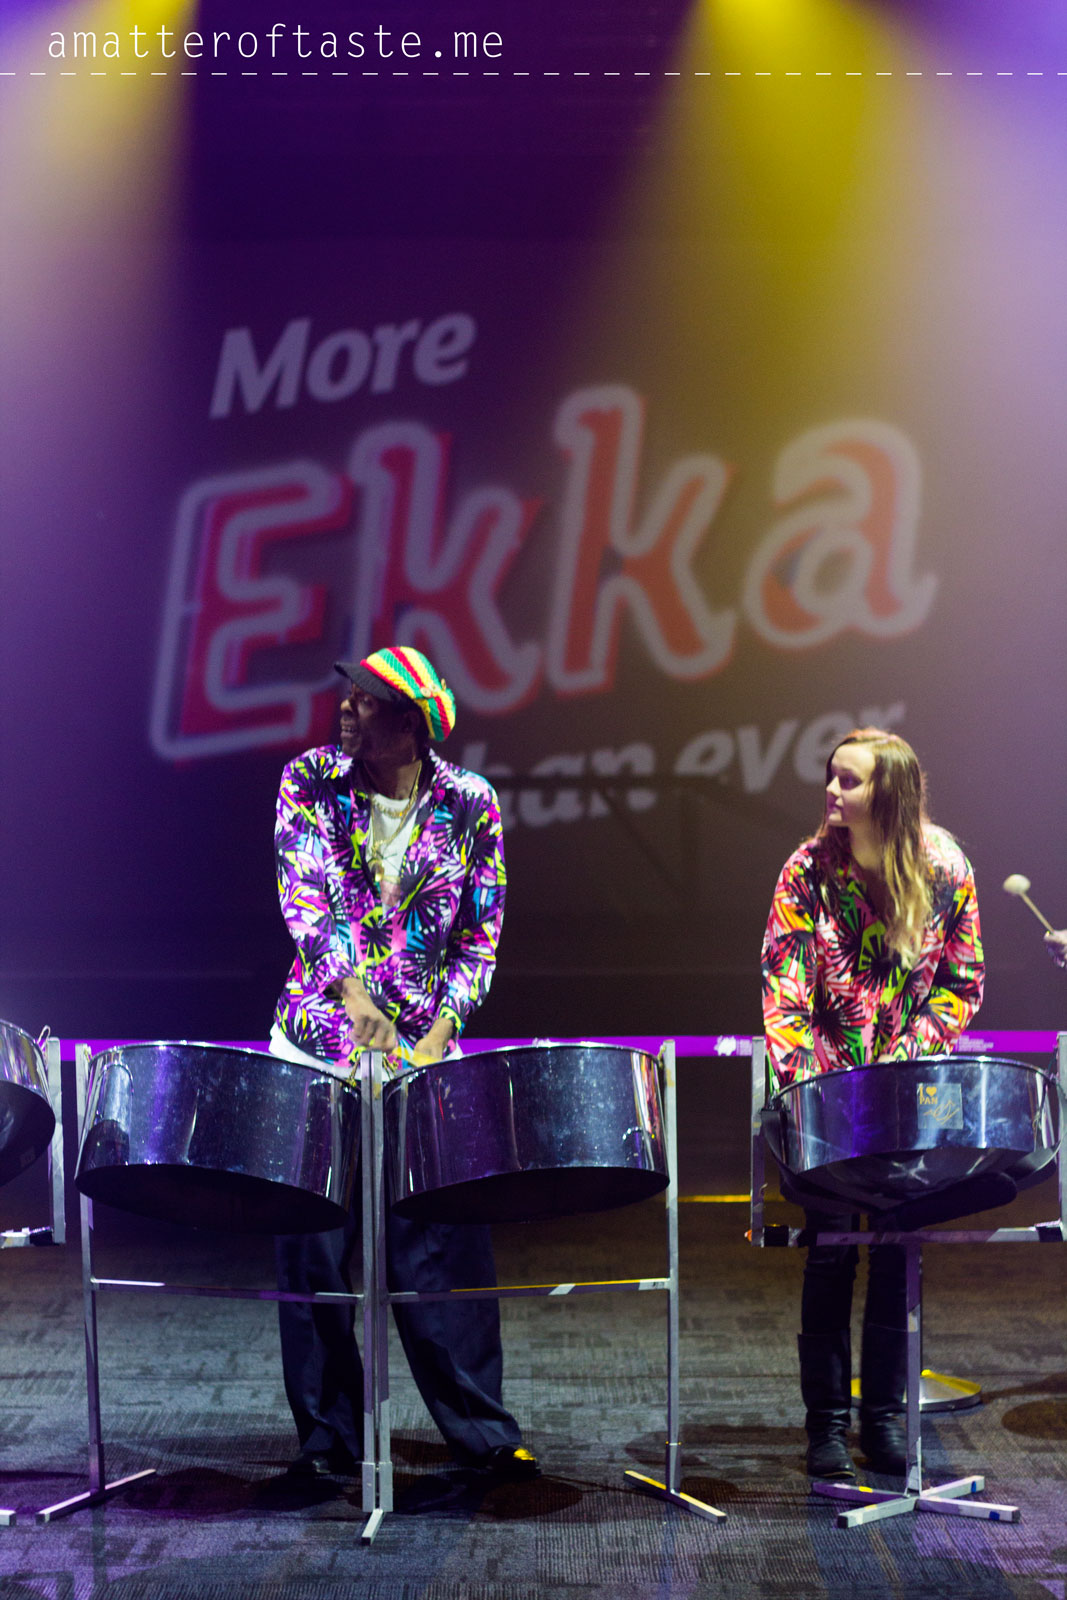 ekka 2013 launch